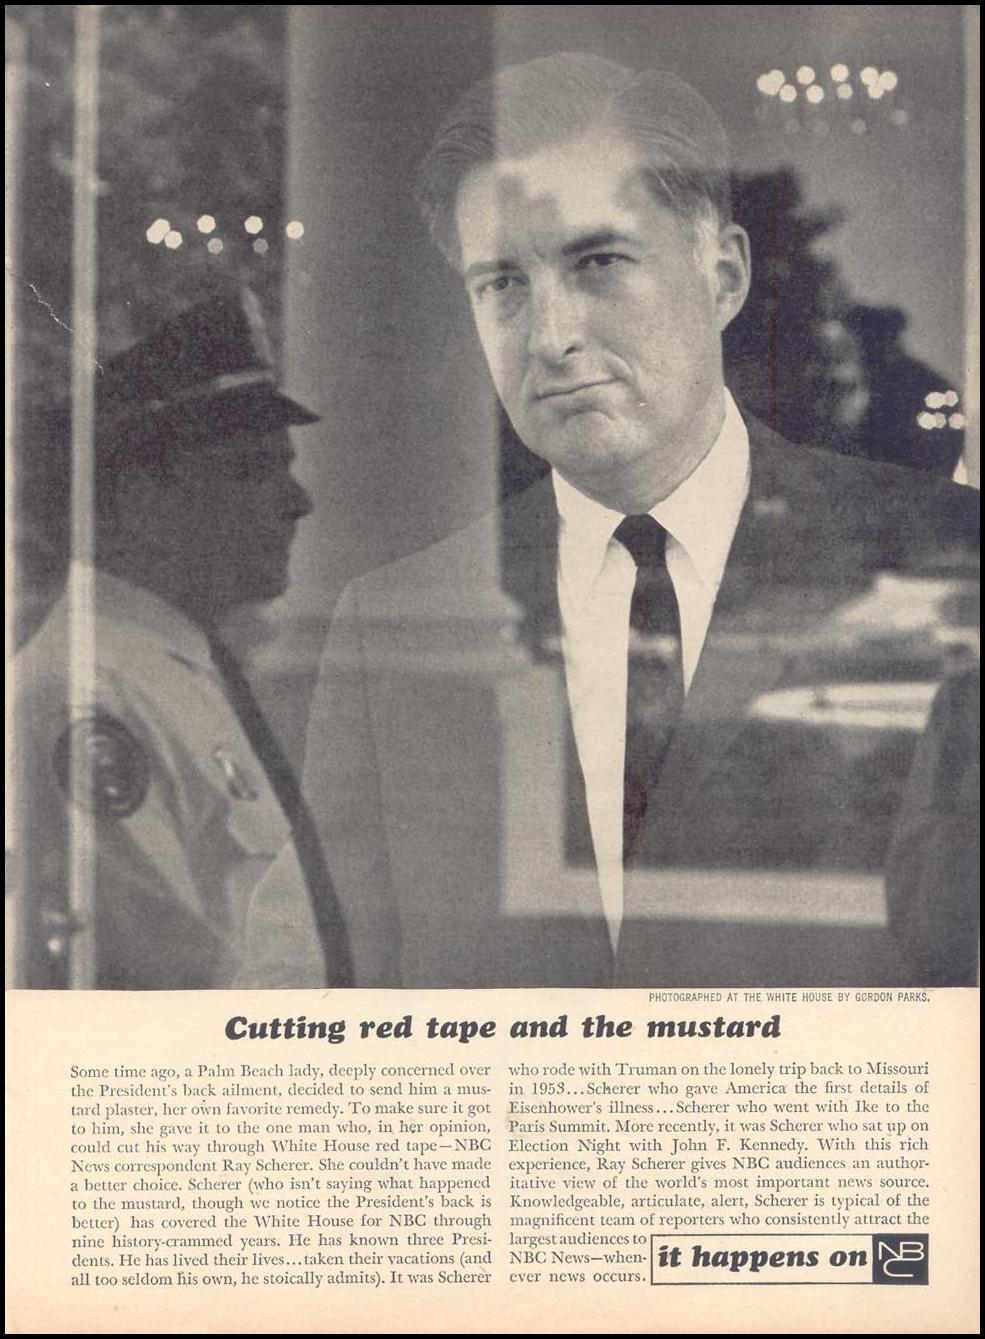 RADIO & TELEVISION NEWS